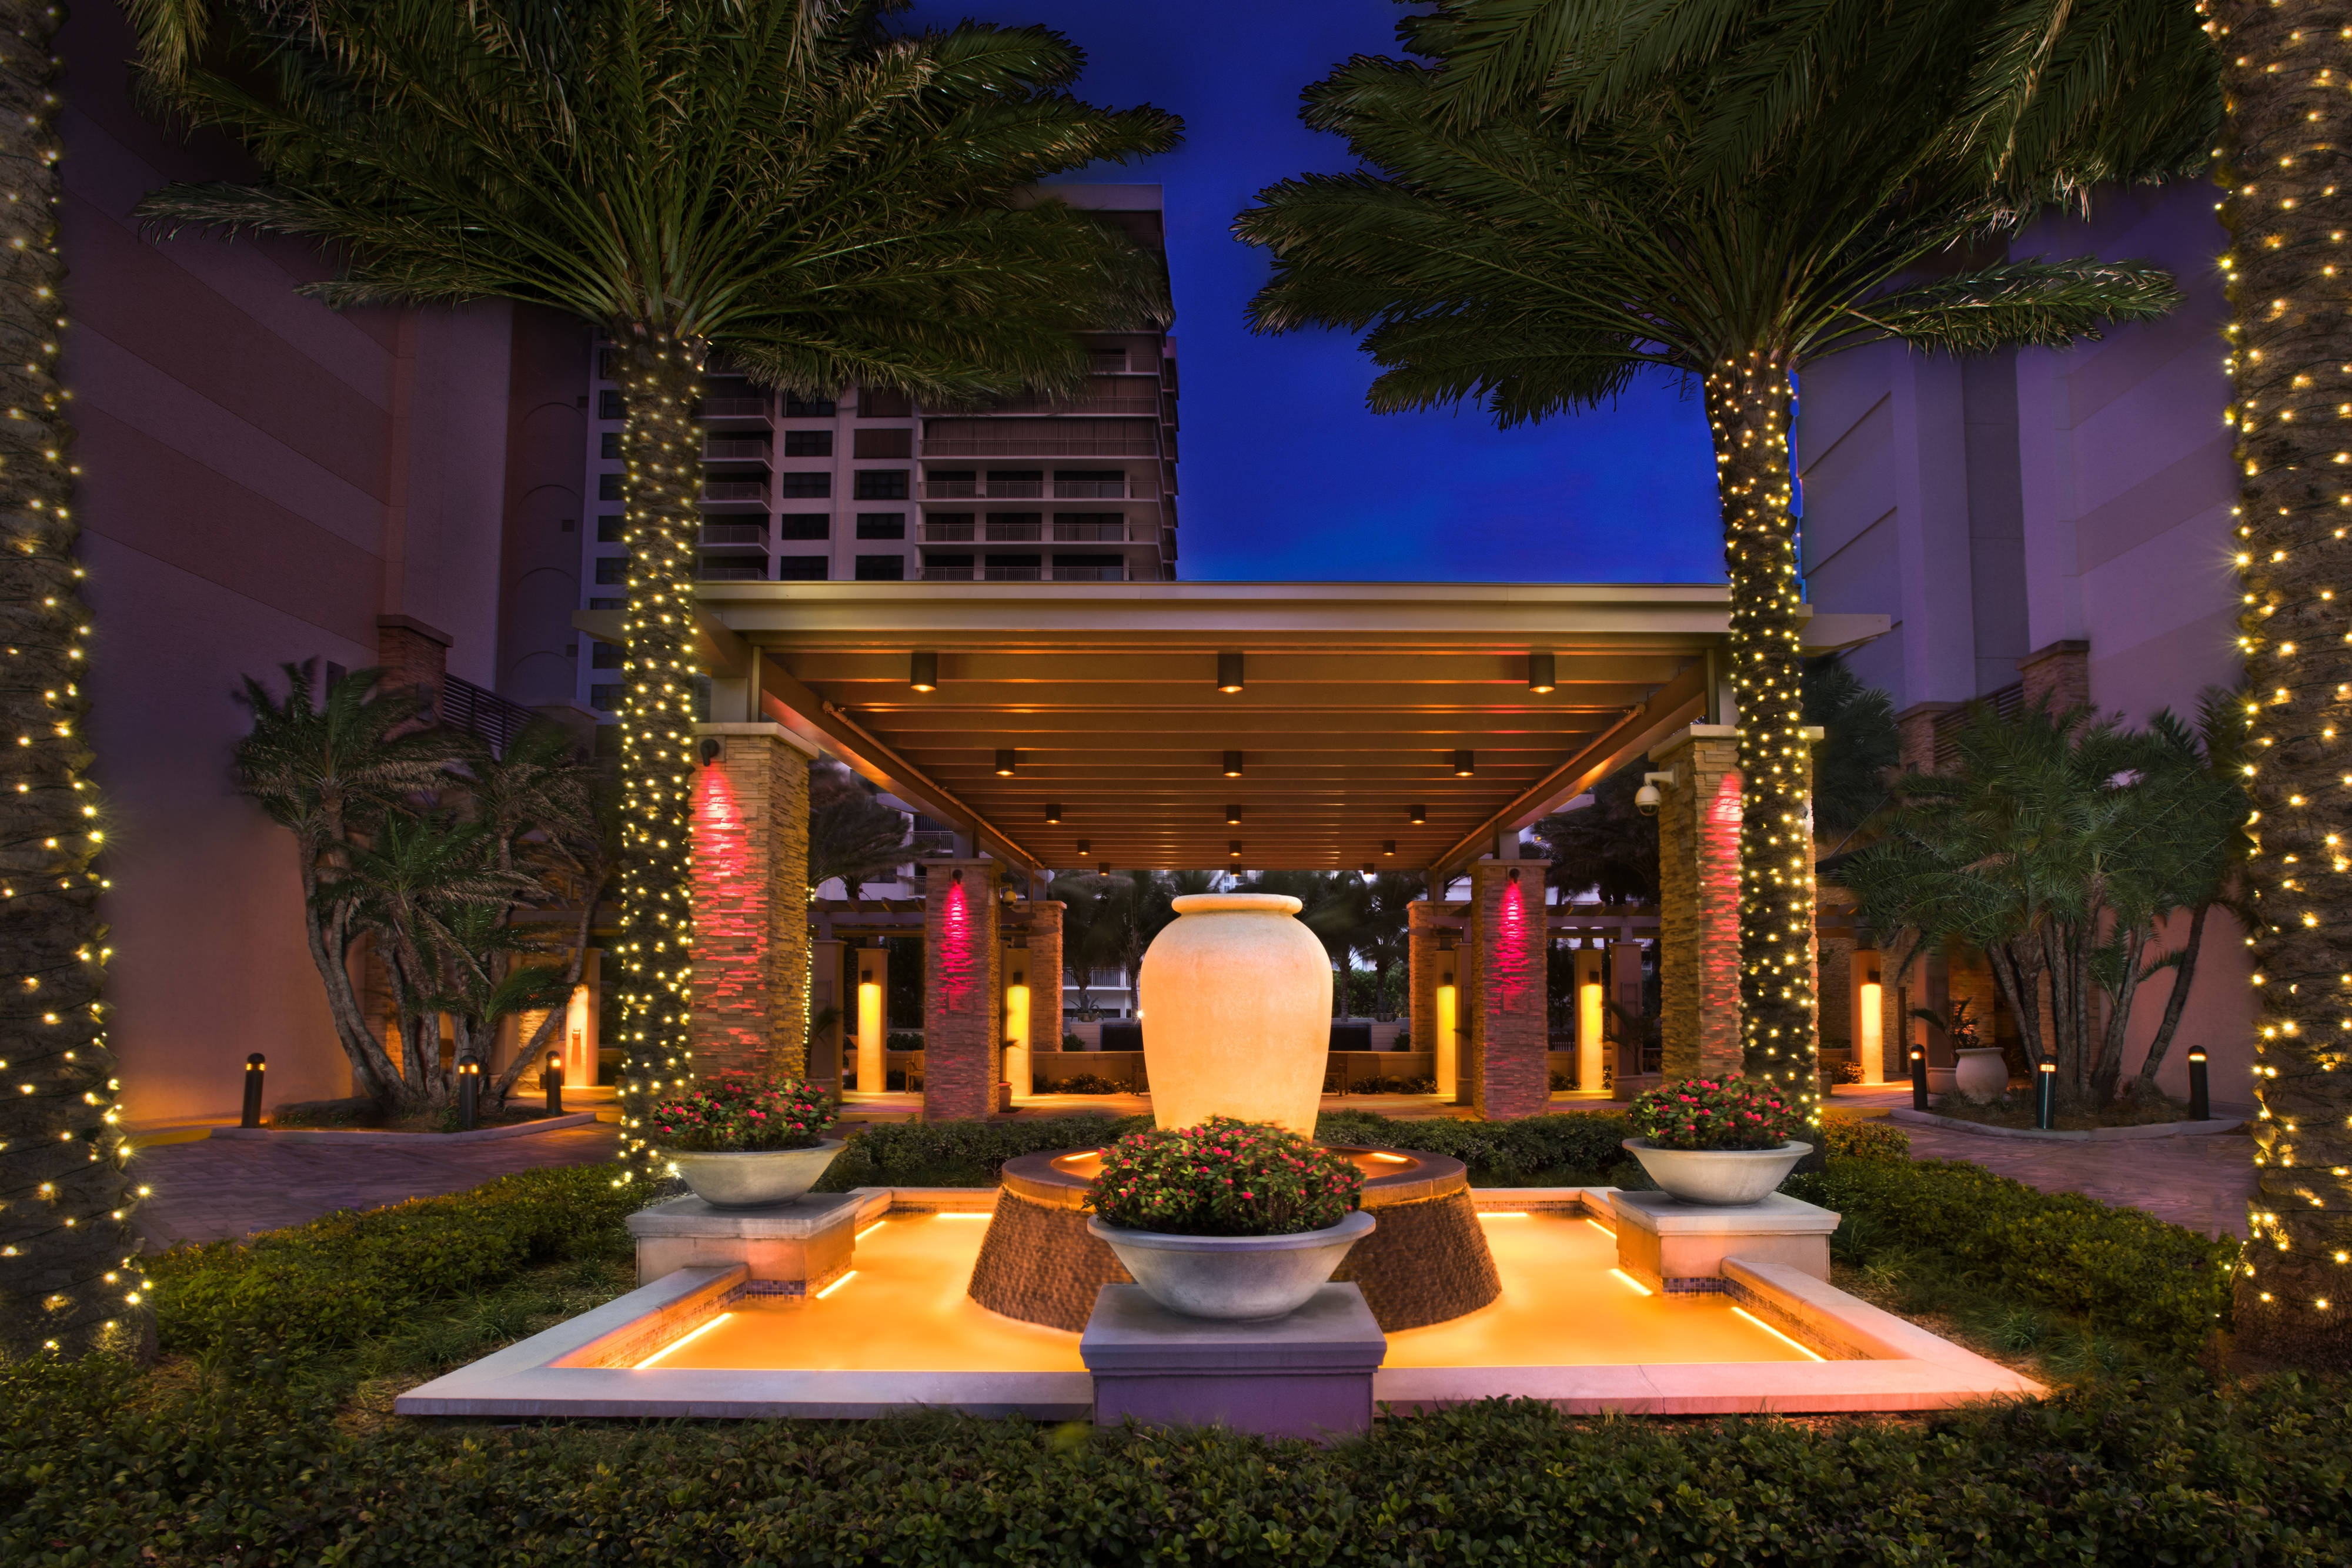 Entrance landscaping and lights